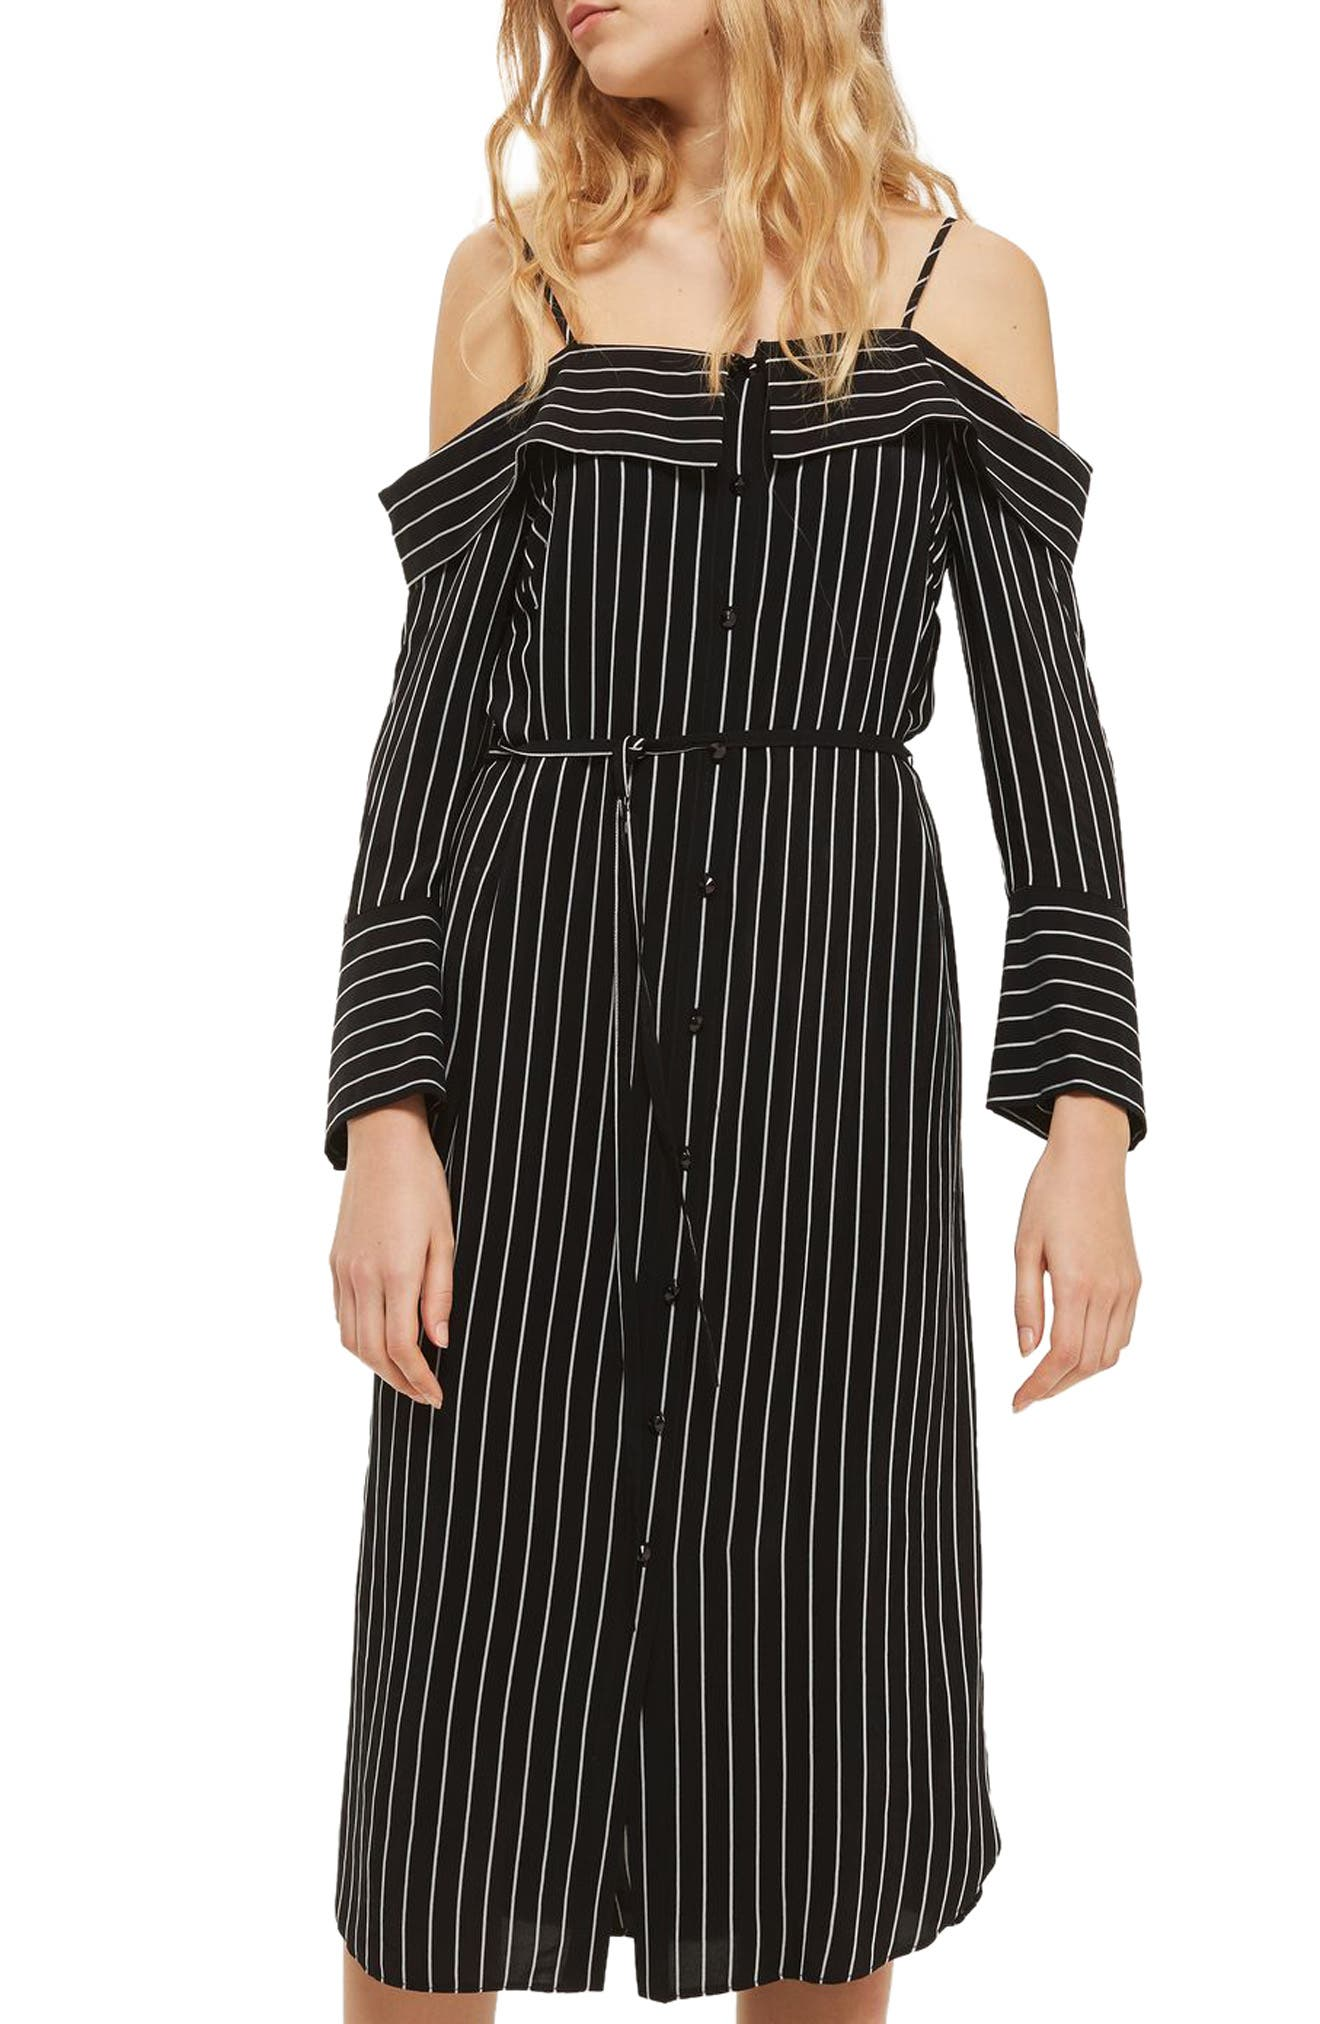 Pinstripe Midi Shirtdress,                             Main thumbnail 1, color,                             001